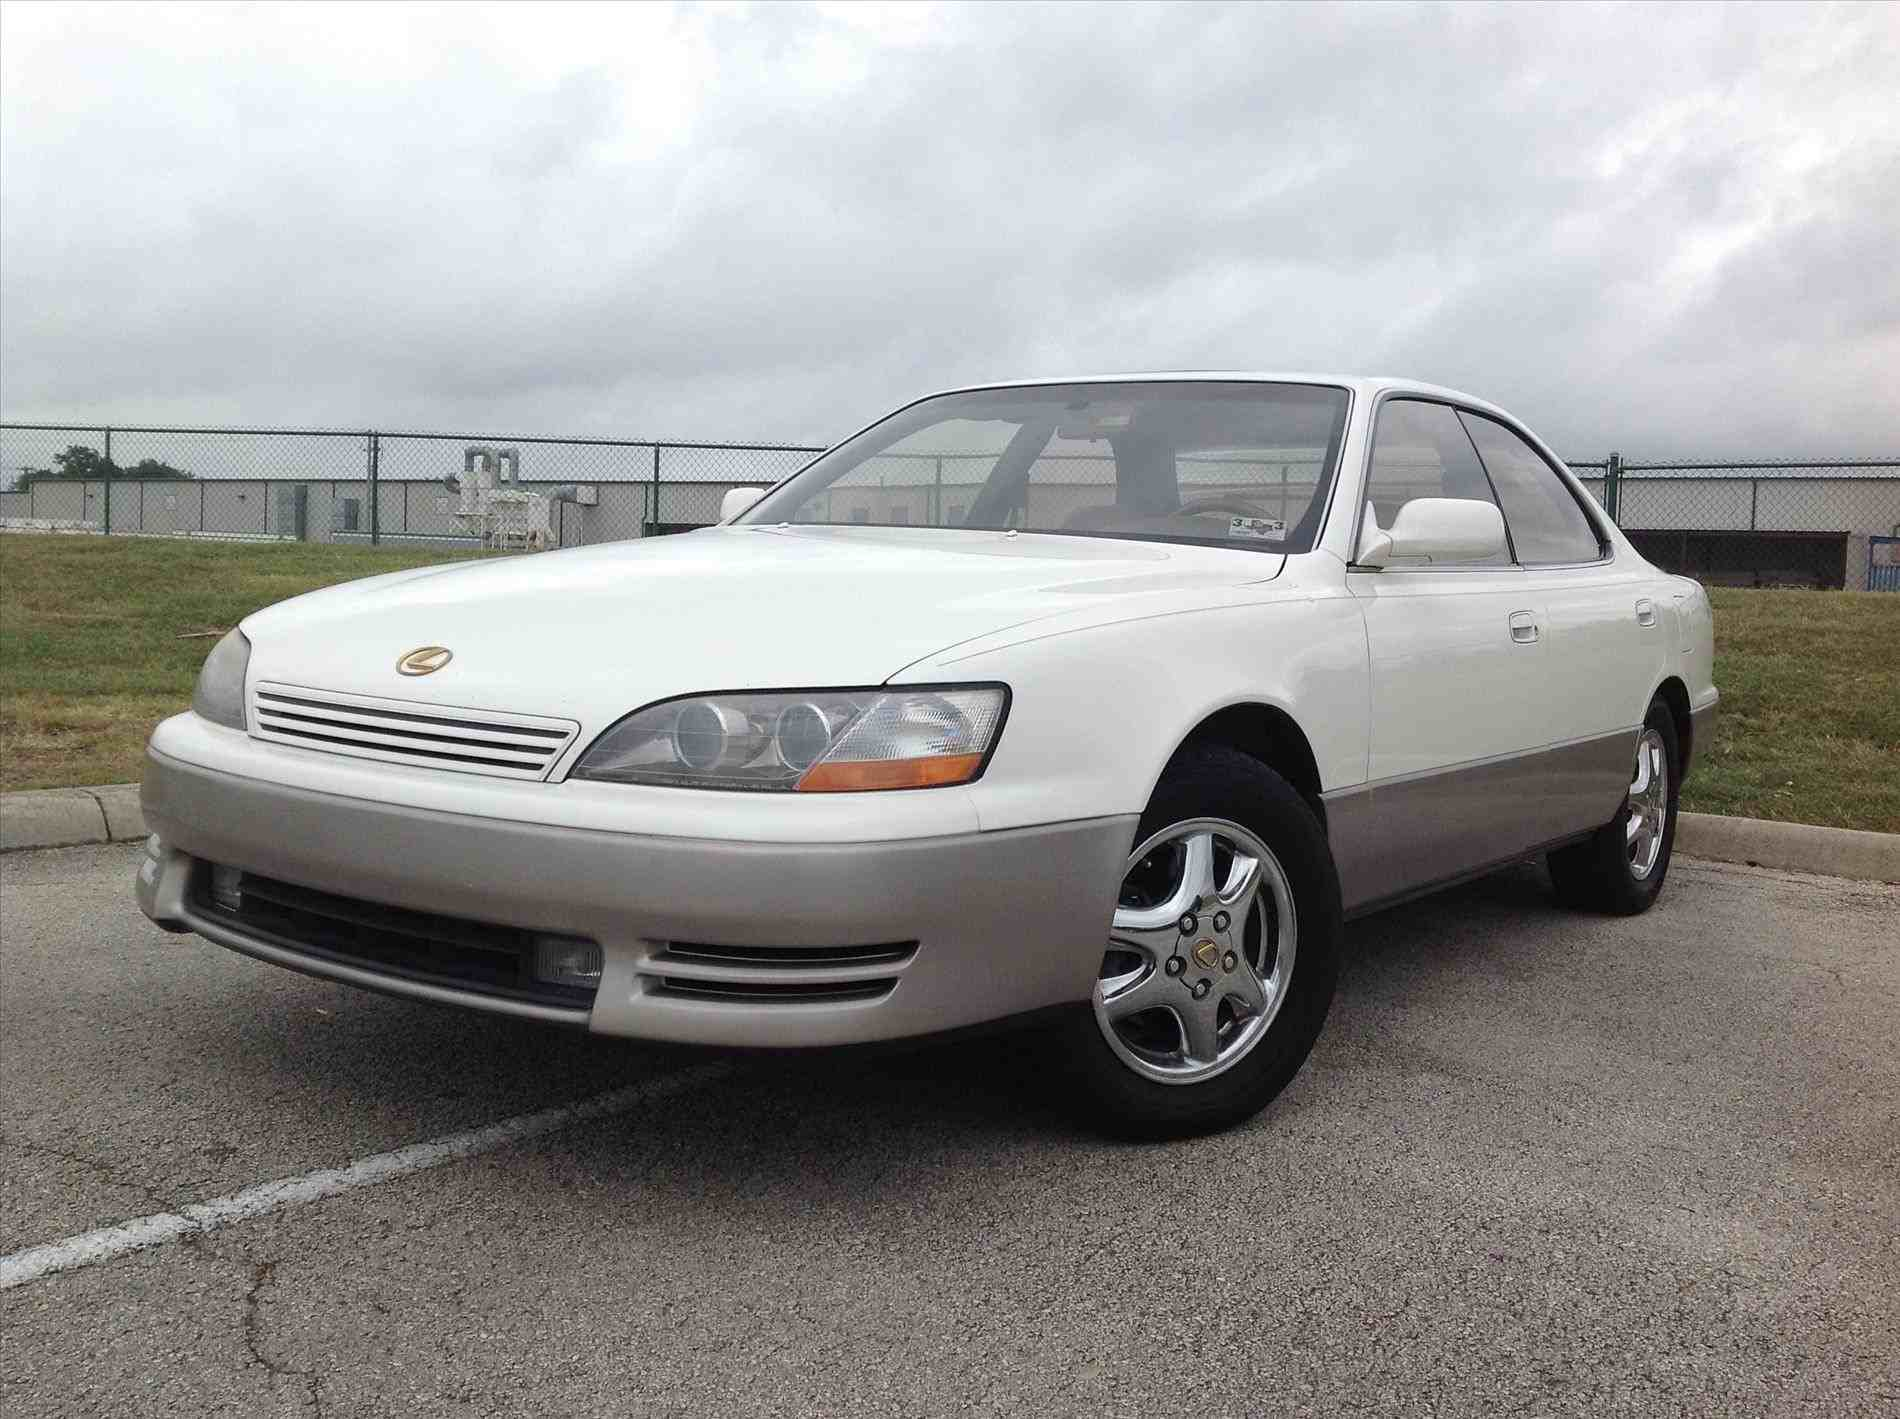 1000 Dollar Cars for Sale Near Me Awesome for Sale Under 1000 Dollars Near Me In Your area Priced